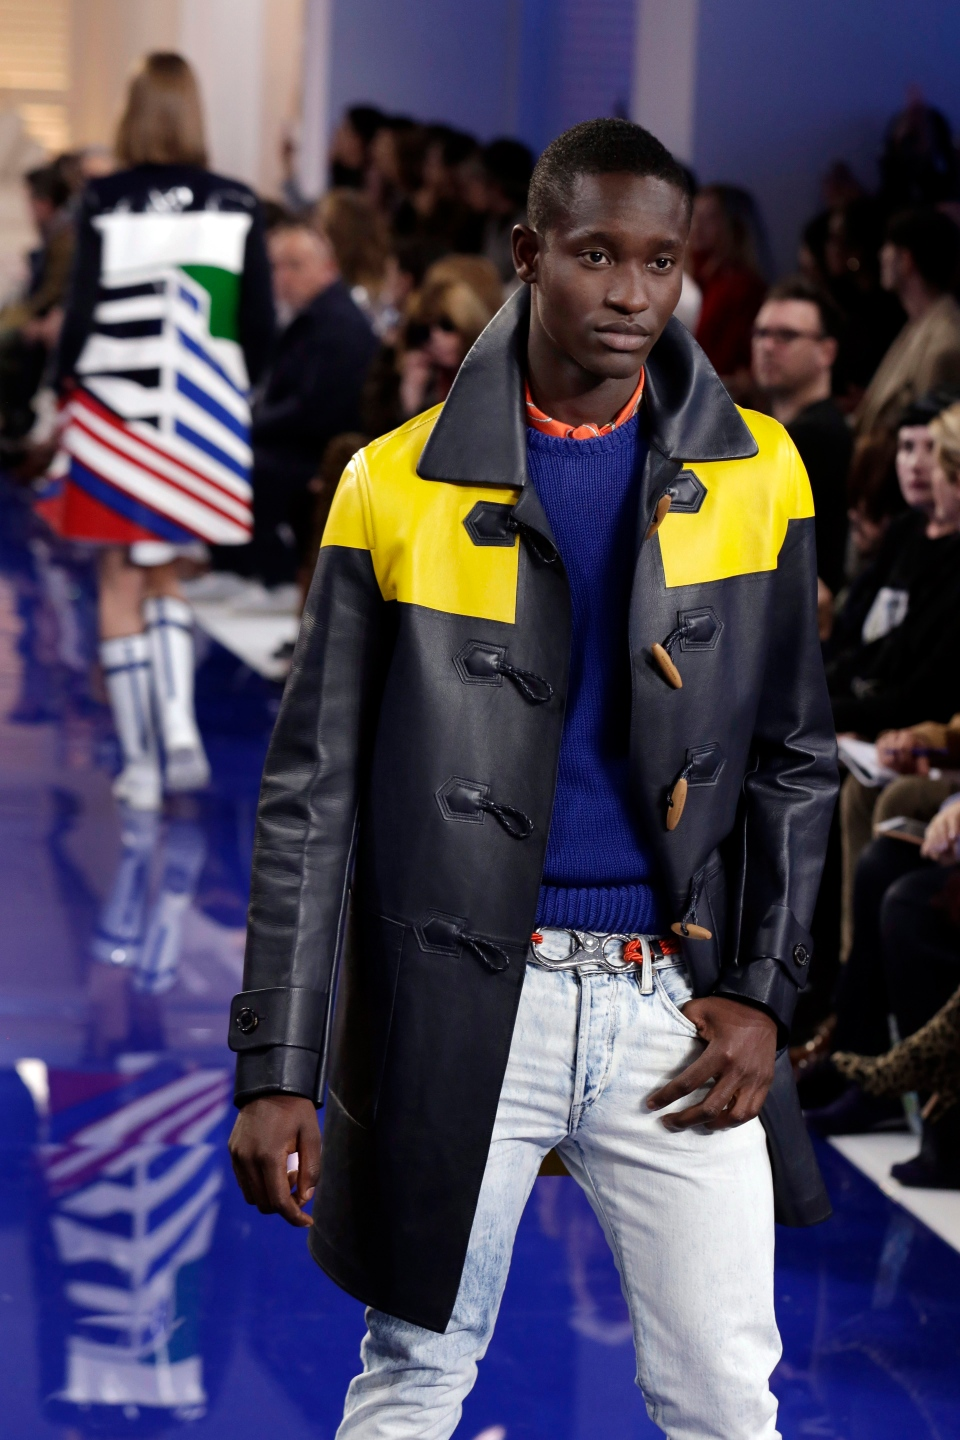 The Ralph Lauren collection is modeled during Fashion Week in New York, Monday, Feb. 12, 2018. (AP Photo/Richard Drew)